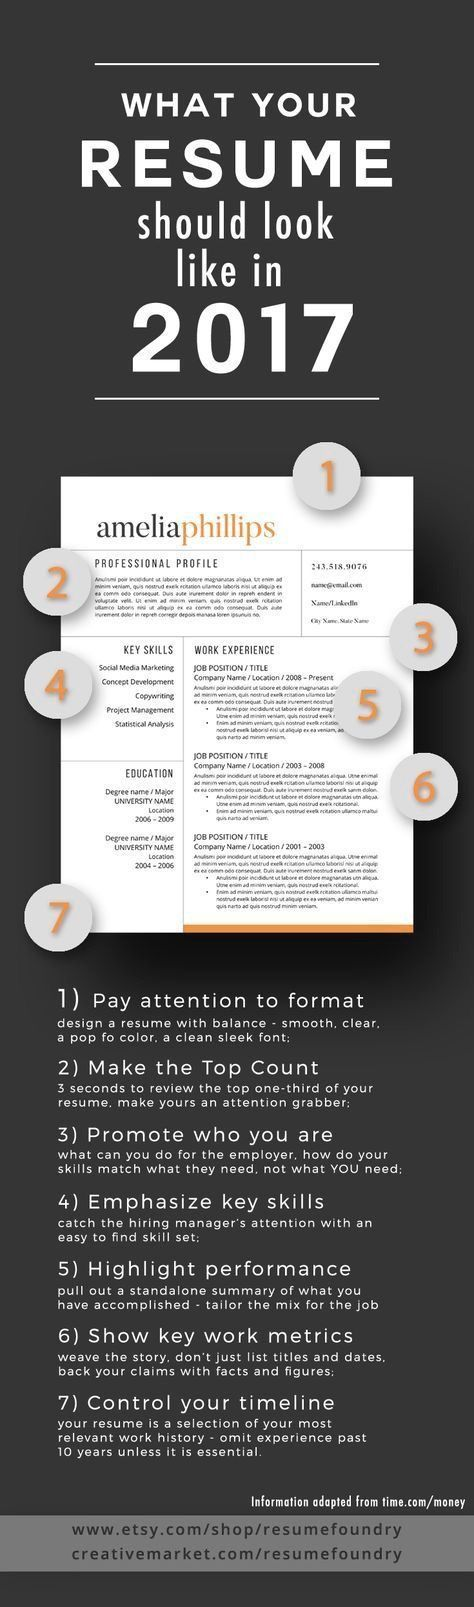 A resume is the first thing an employer sees. It's what grabs their attention, or causes them to get dismissed without a second look. Make your resume professional and an attention getter. #Jobinterviews